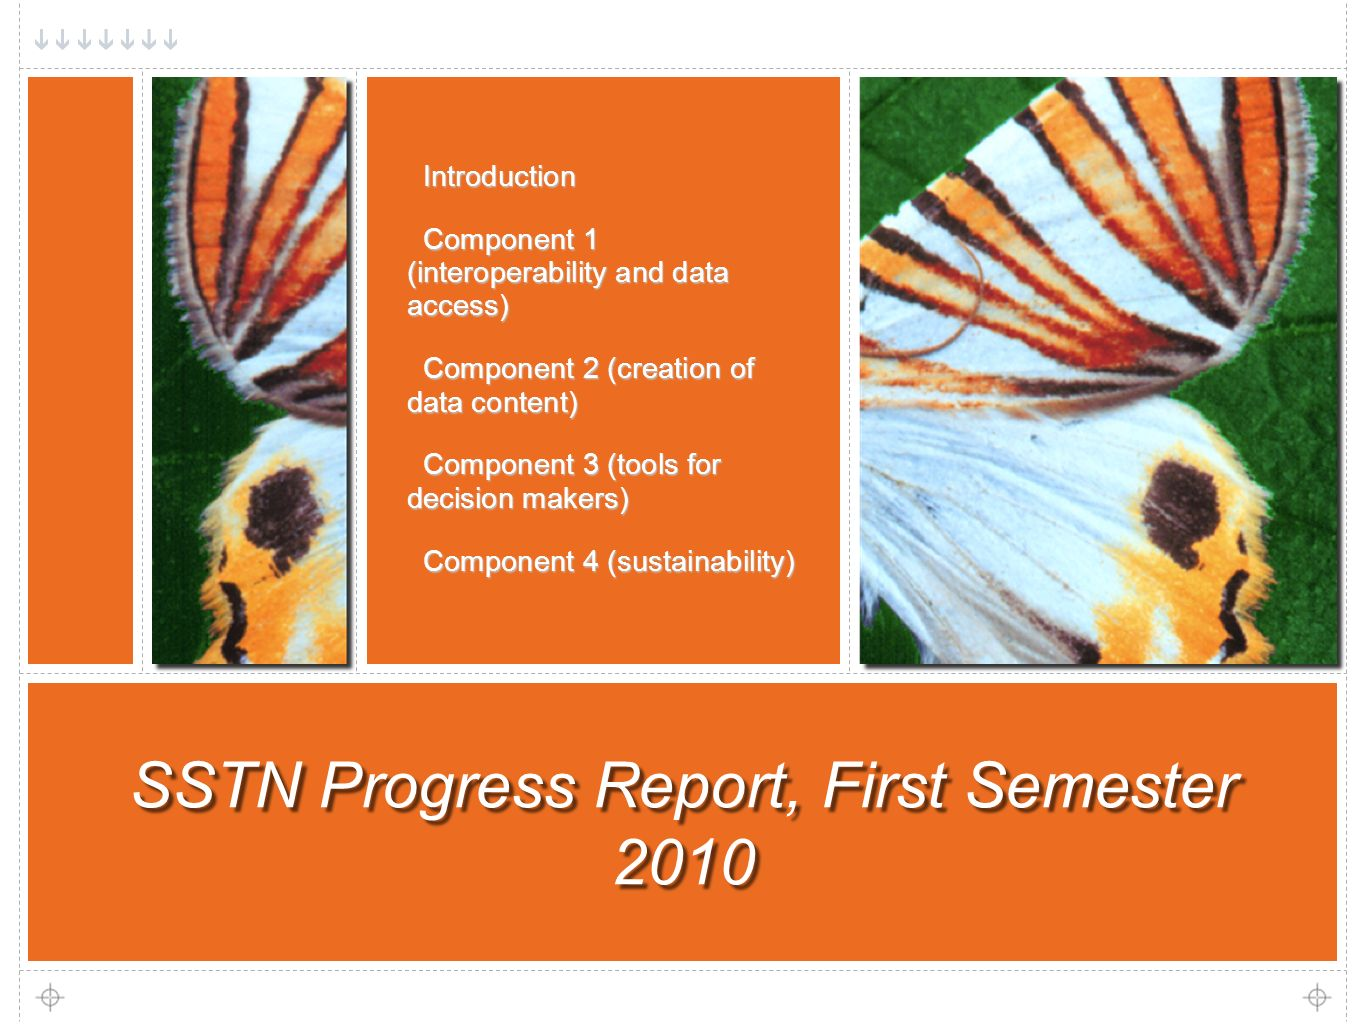 2 SSTN Progress Report, First Semester 2010 Introduction Introduction Component 1 (interoperability and data access) Component 1 (interoperability and